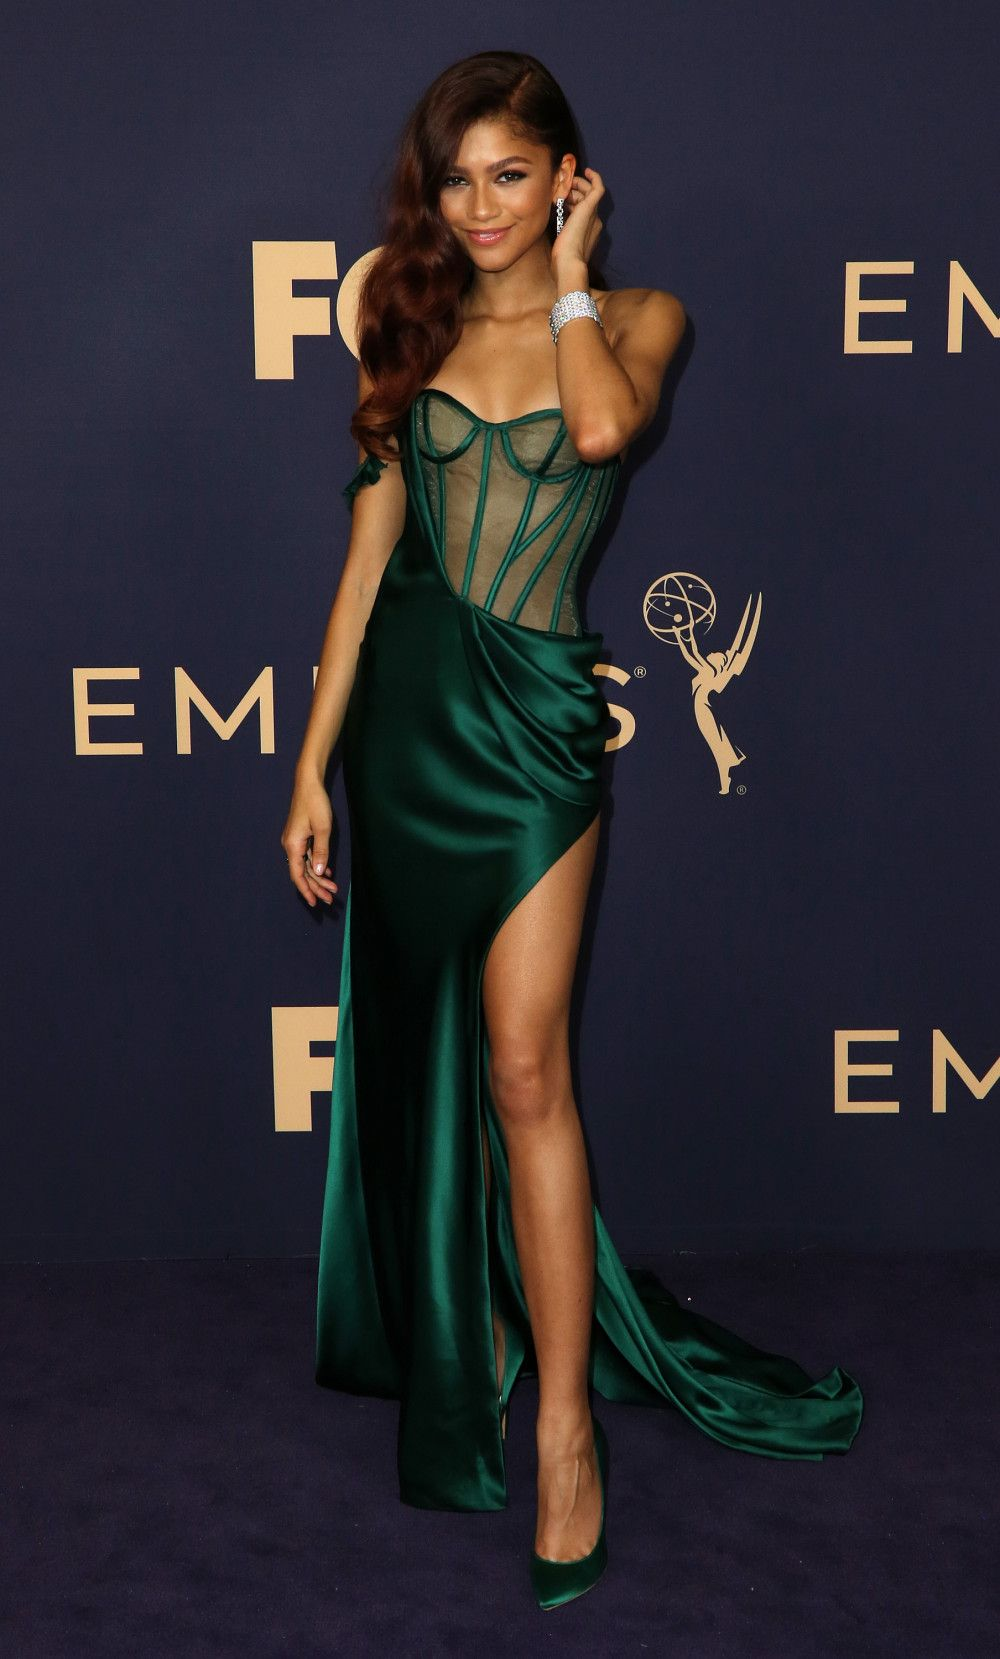 Photo of Emmys 2019 Red Carpet Fashion: See the Stars' Styles!